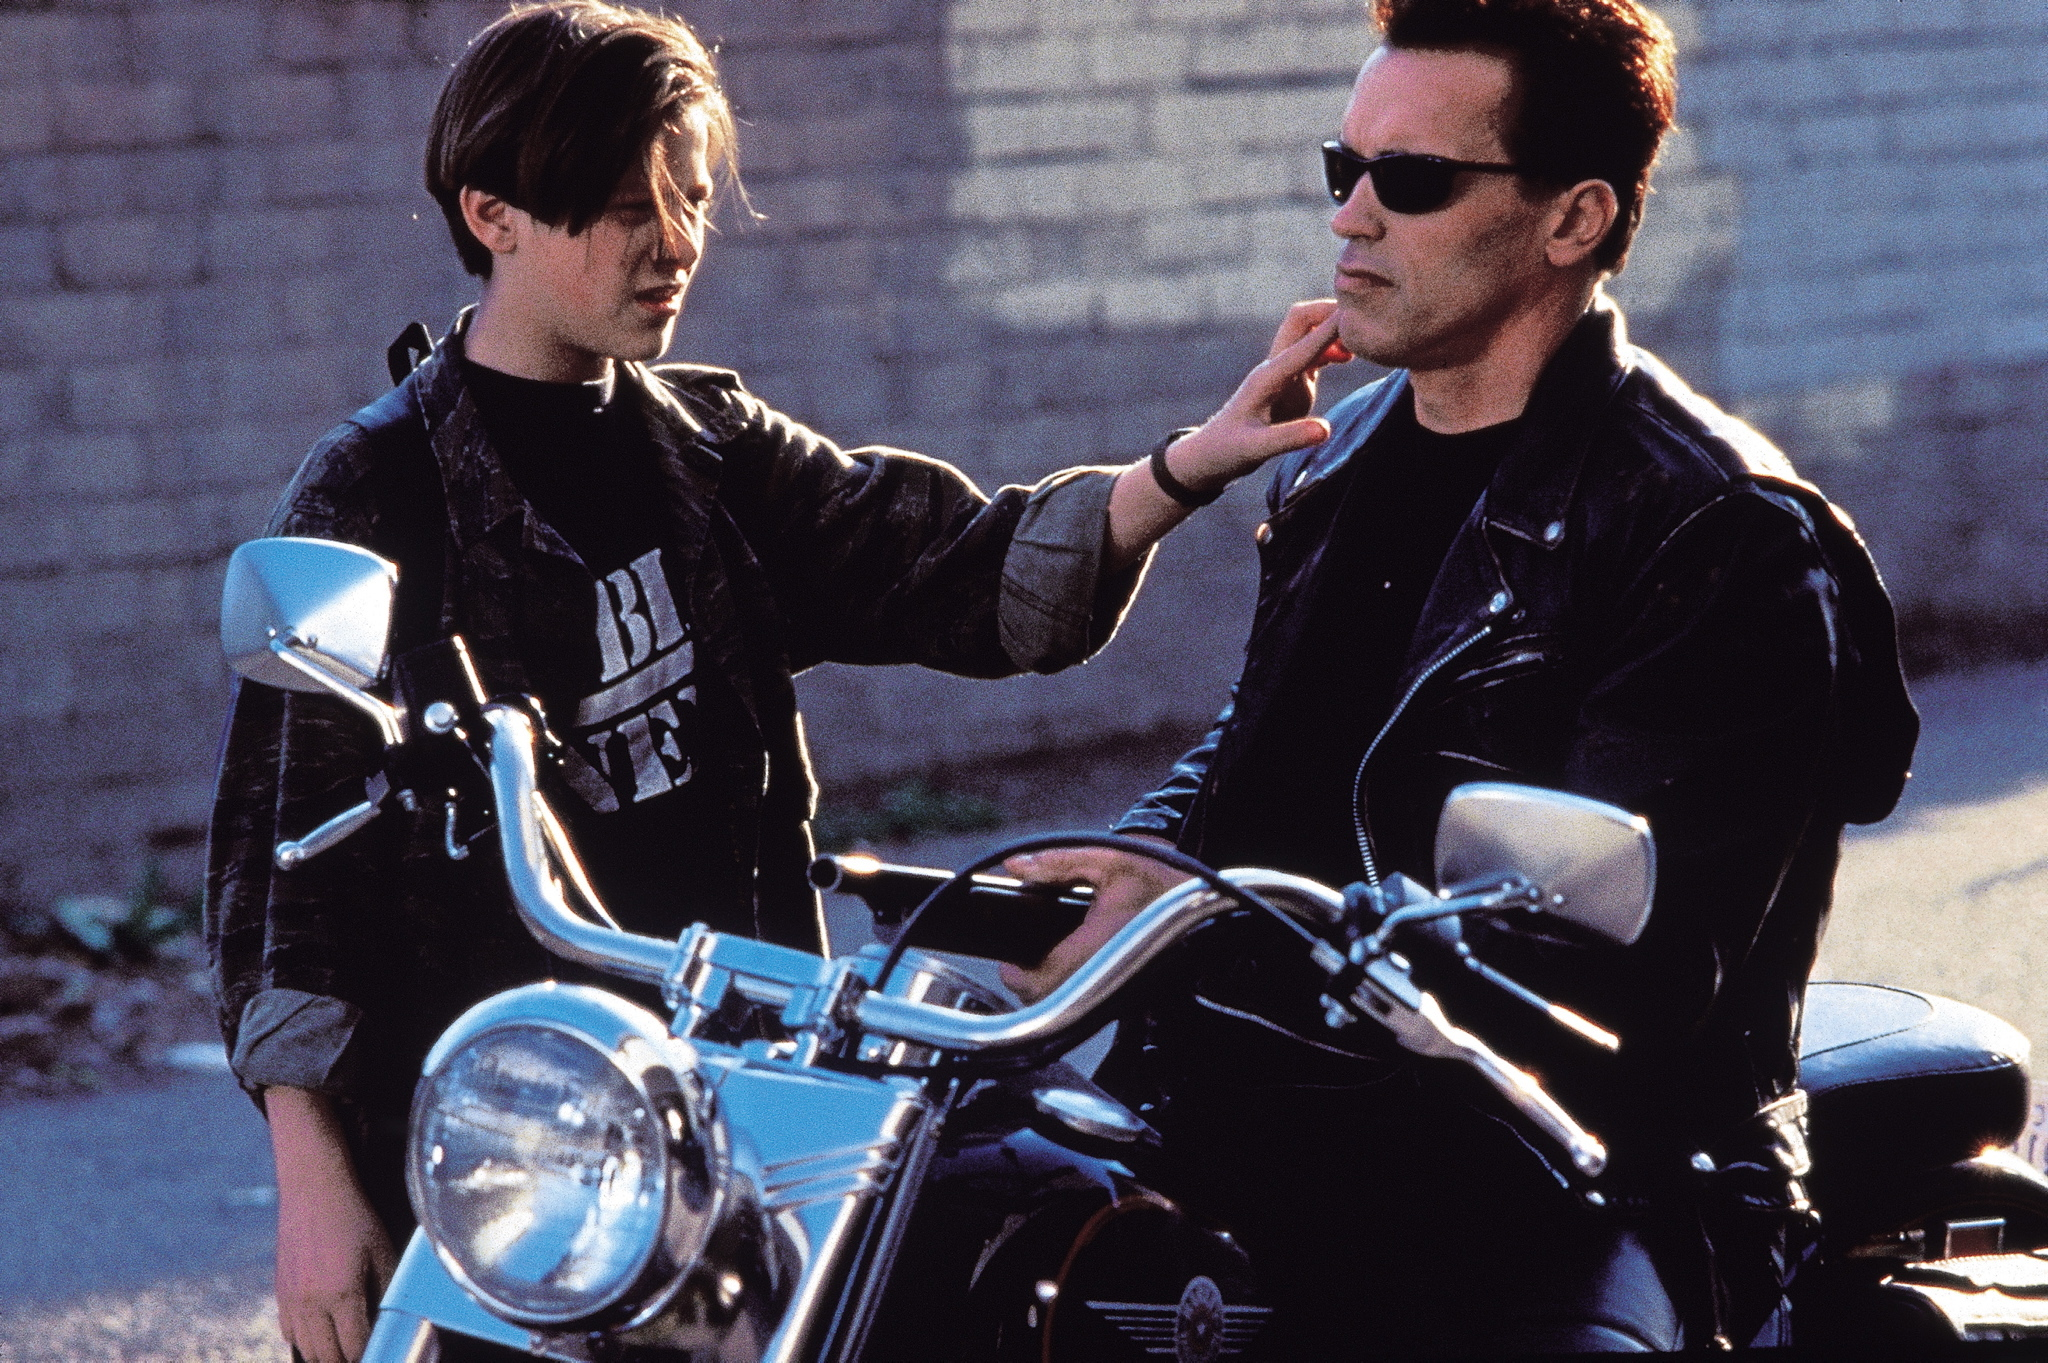 Sci-fi movie: Terminator 2: Judgment Day